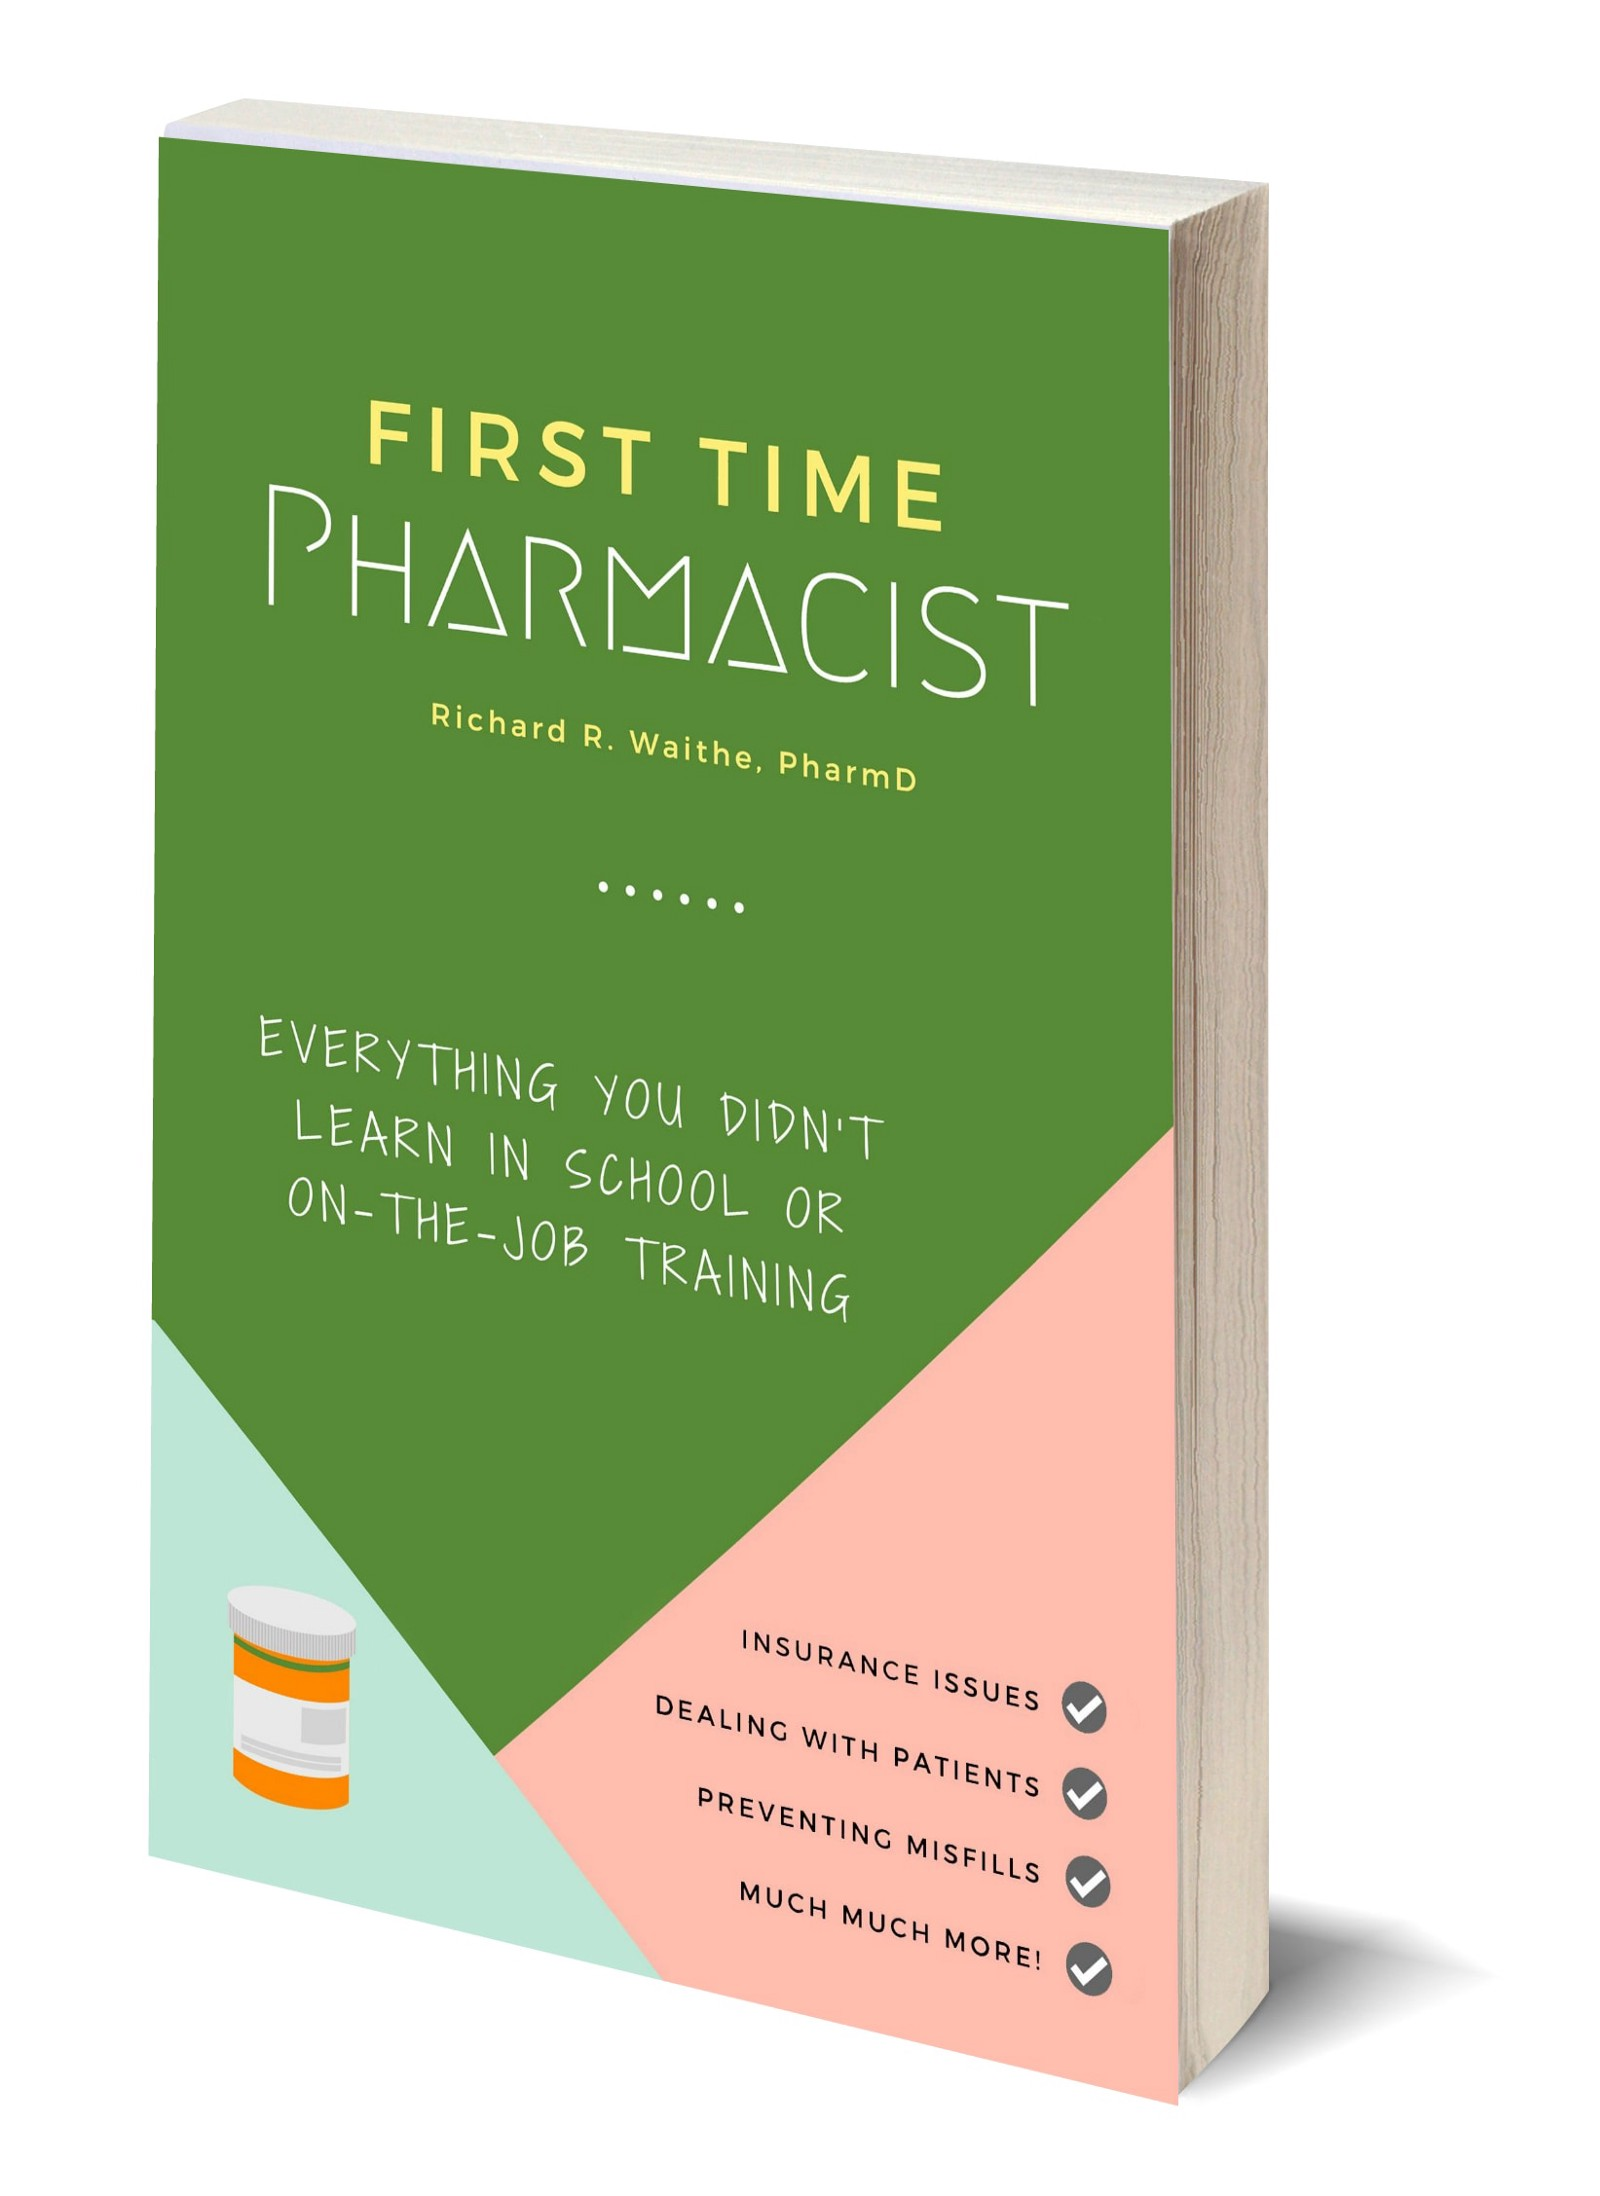 Now available on iBooks and you can find the Kindle and paperback versions on Amazon here: https://www.amazon.com/First-Time-Pharmacist-Everything-job/dp/ ...